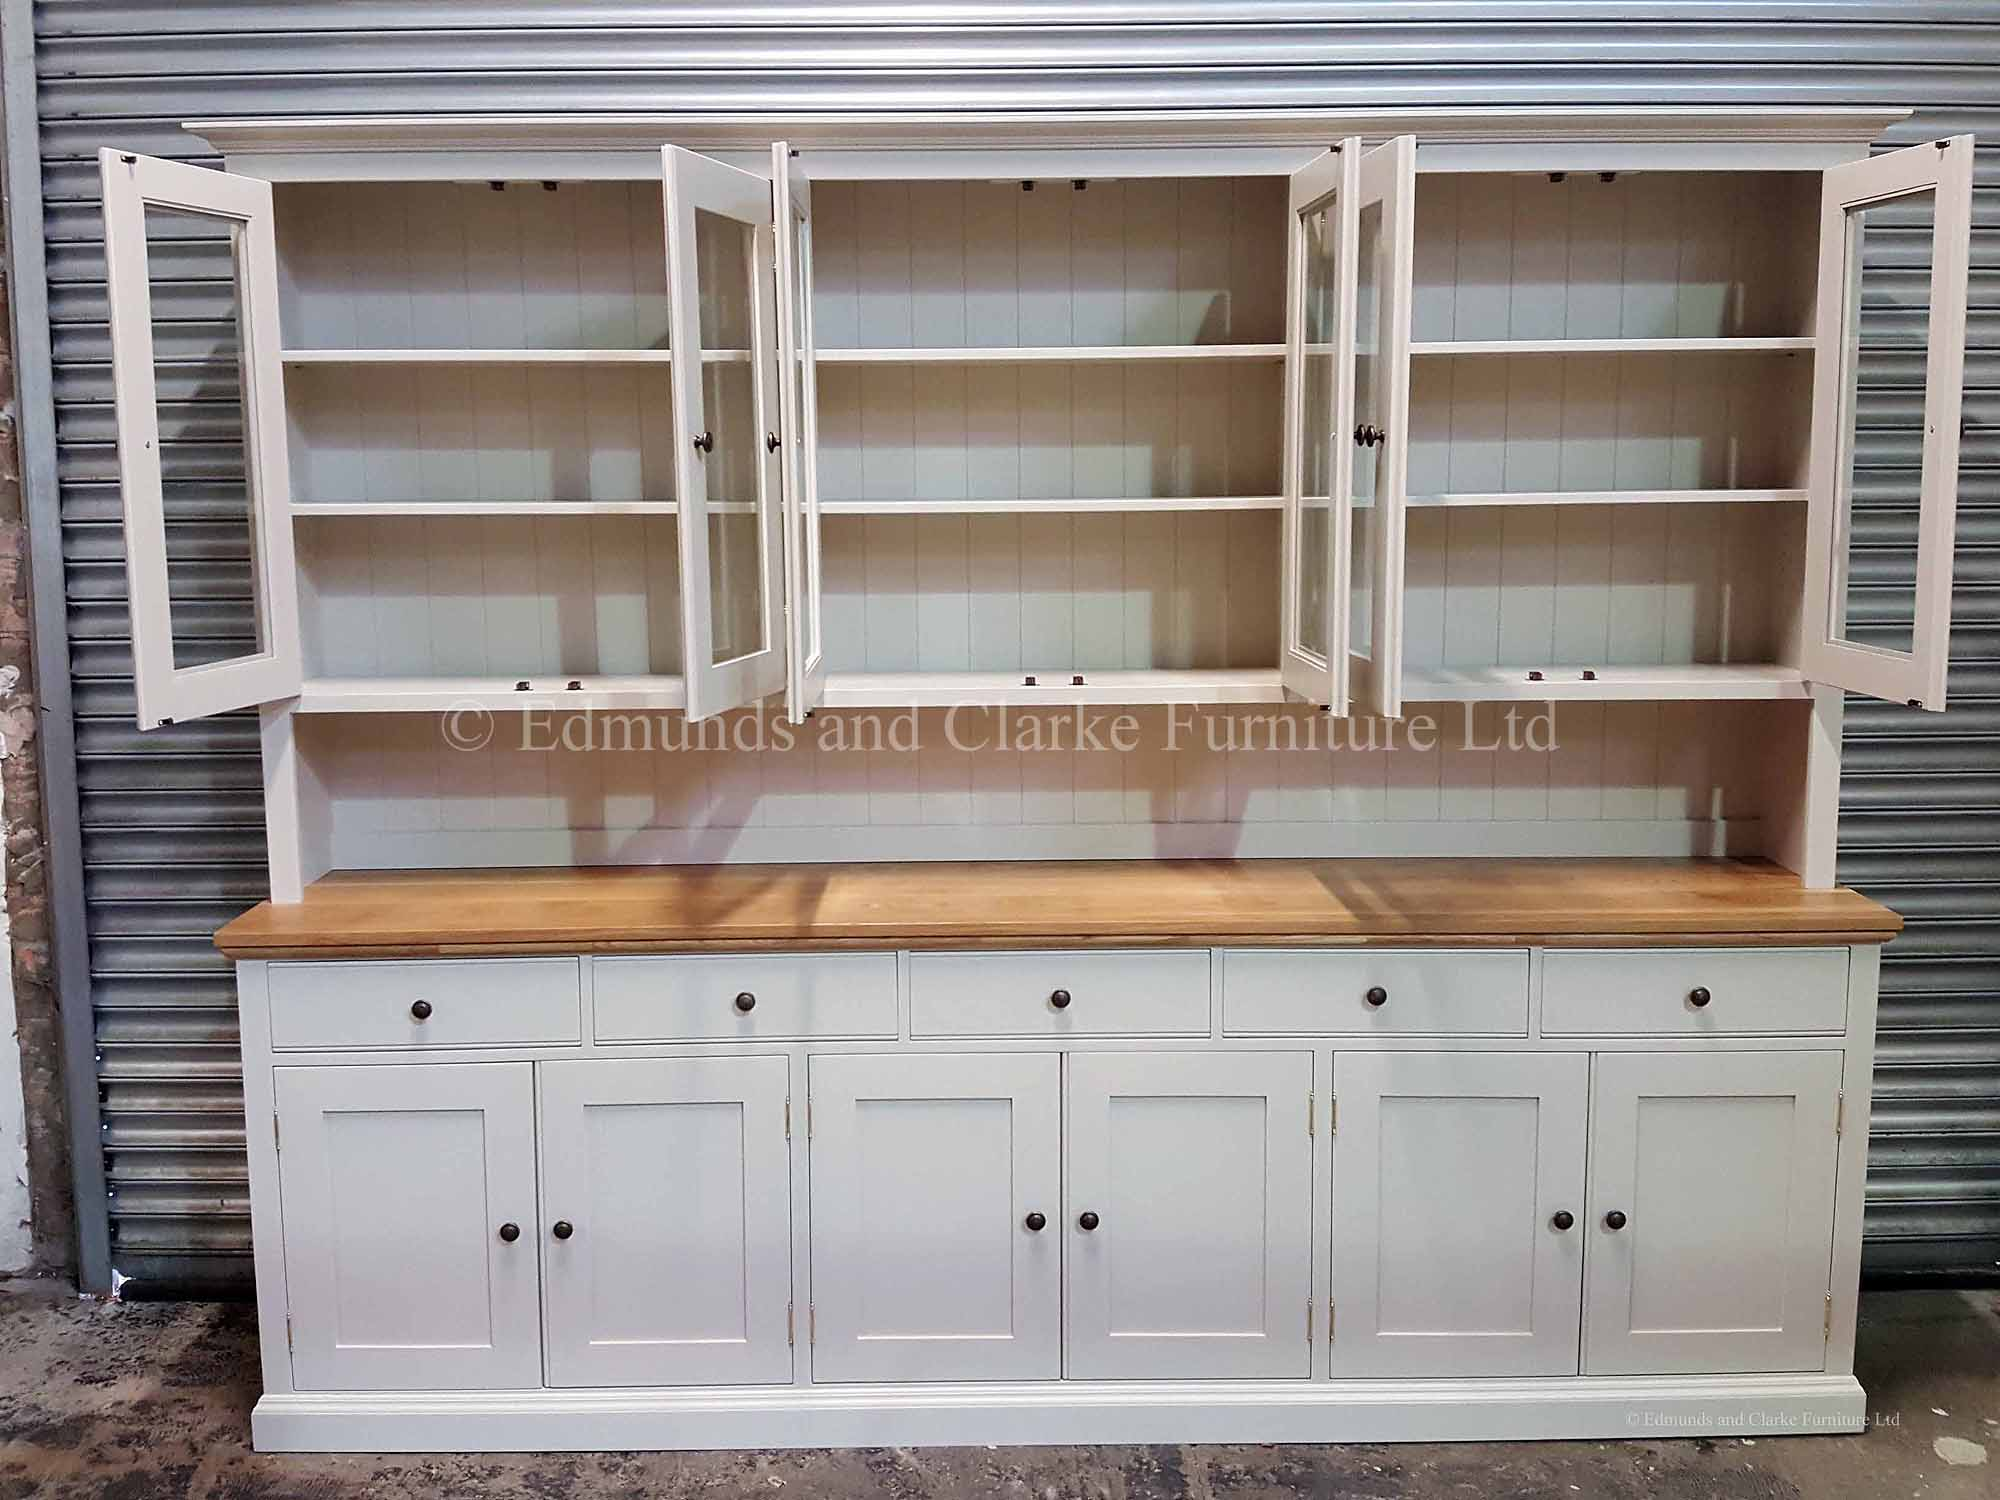 9ft complet dresser six glazed doors in rack with six doors in sideboard with five drawers above